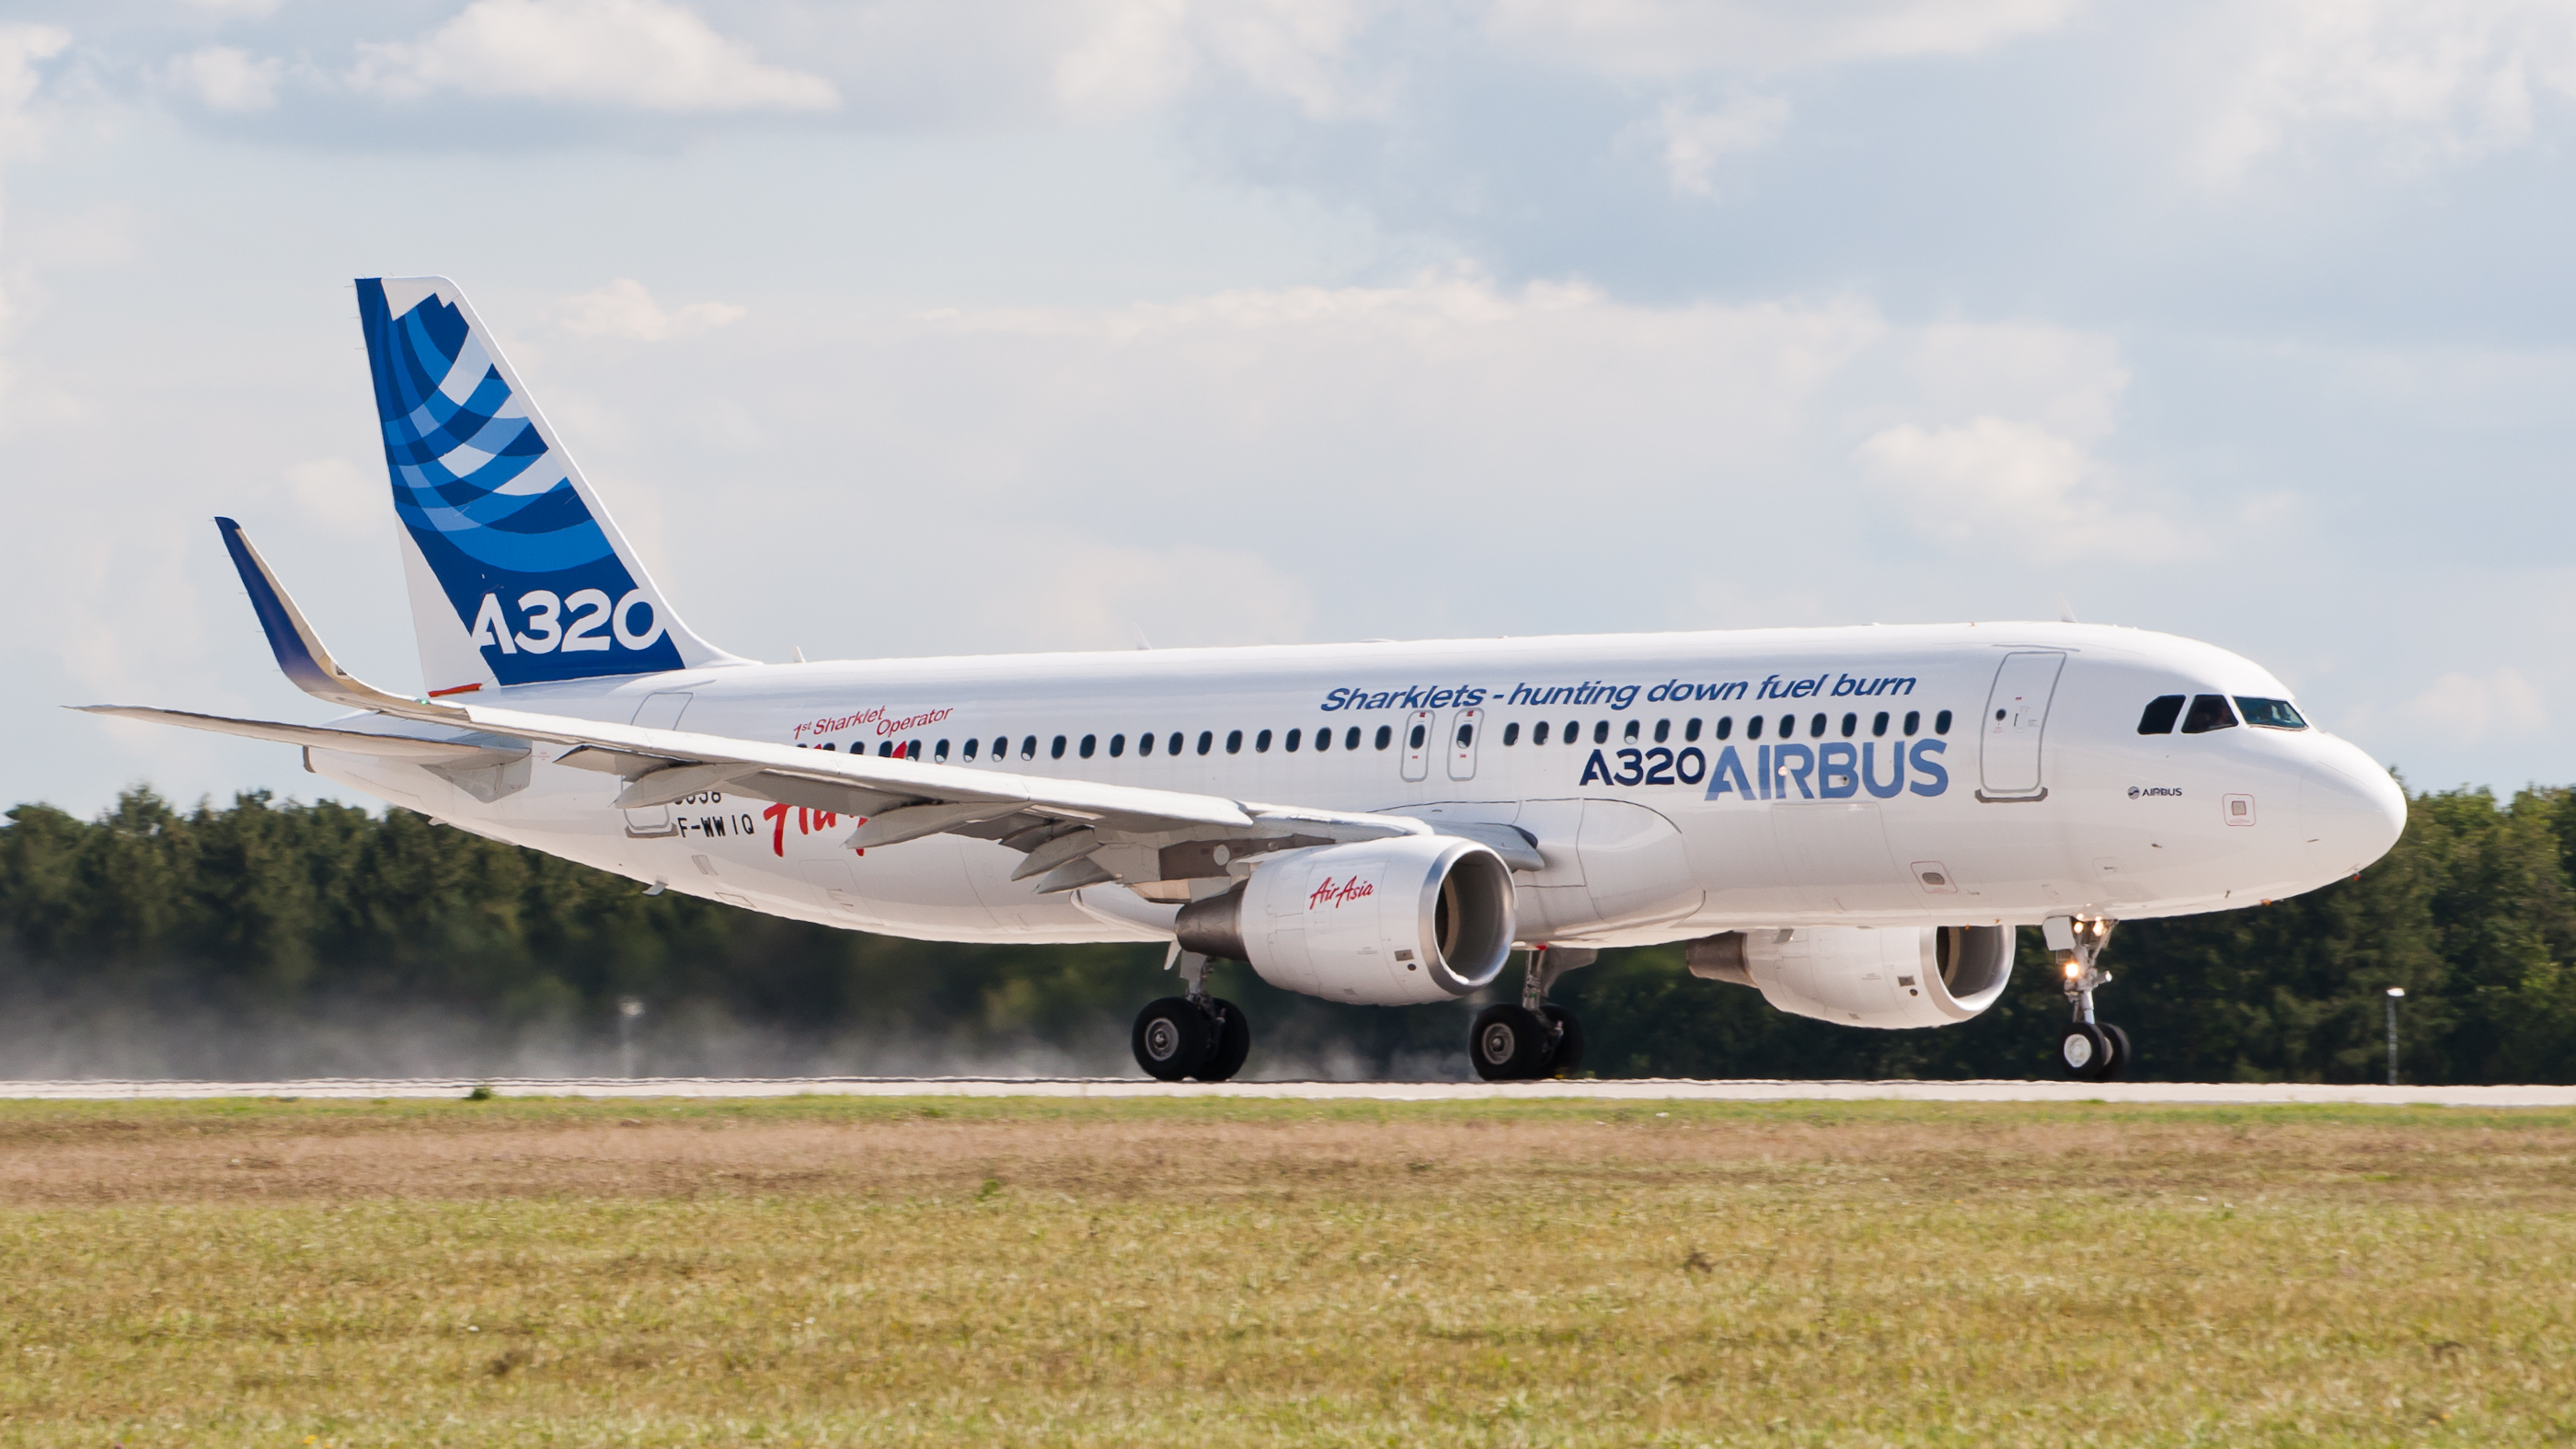 https://upload.wikimedia.org/wikipedia/commons/c/cd/F-WWIQ_Airbus_A320_sharklet_ILA_2012_07.jpg